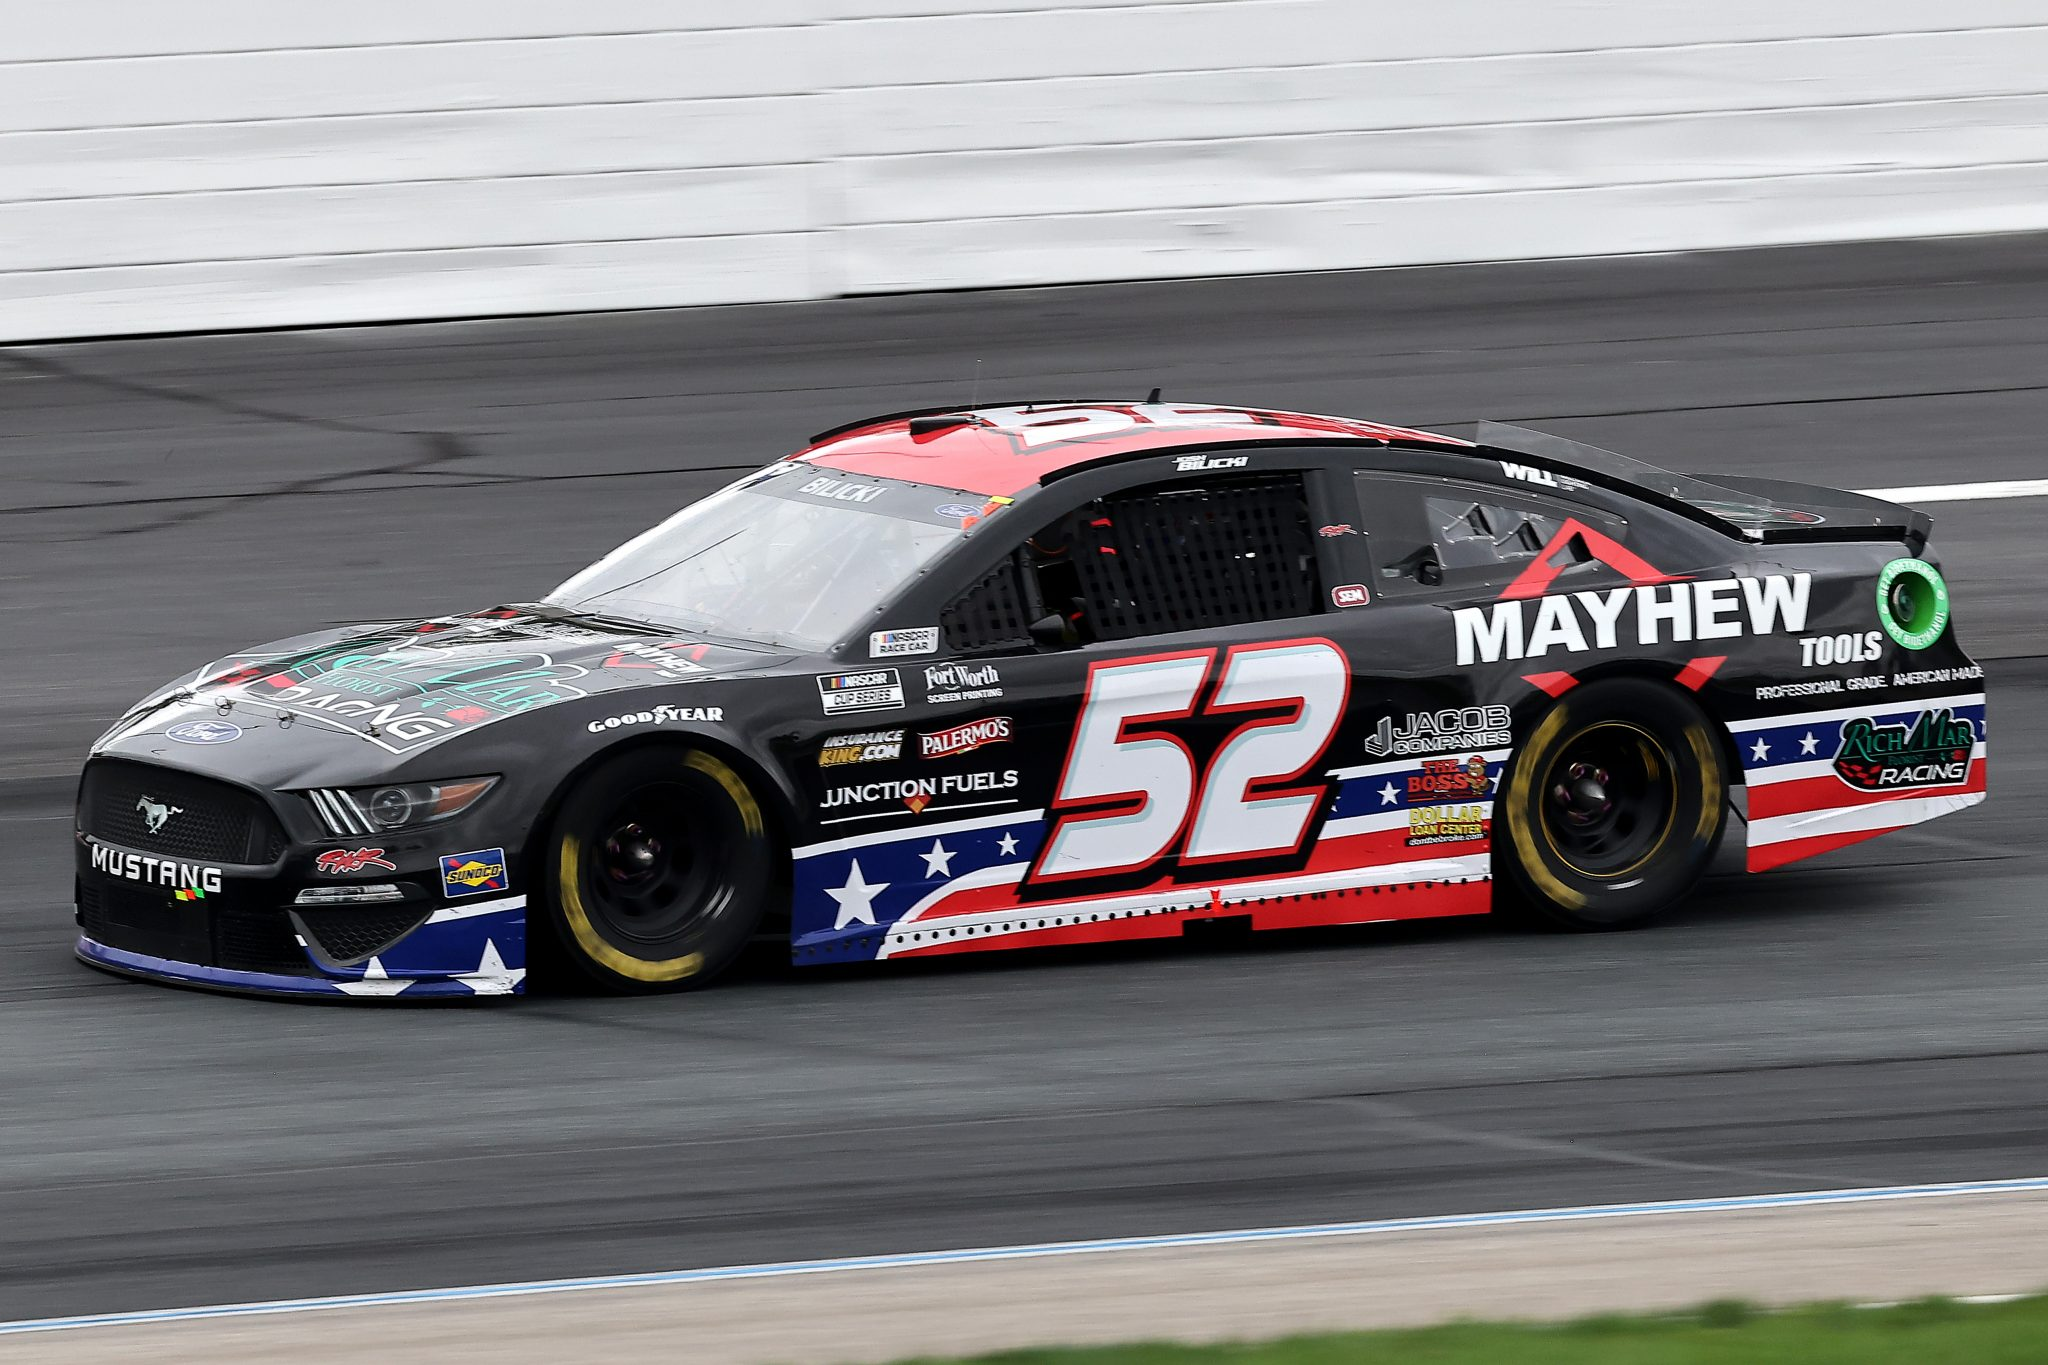 LOUDON, NEW HAMPSHIRE - JULY 18: Josh Bilicki, driver of the #52 Ford, drives during the NASCAR Cup Series Foxwoods Resort Casino 301 at New Hampshire Motor Speedway on July 18, 2021 in Loudon, New Hampshire. (Photo by James Gilbert/Getty Images)   Getty Images